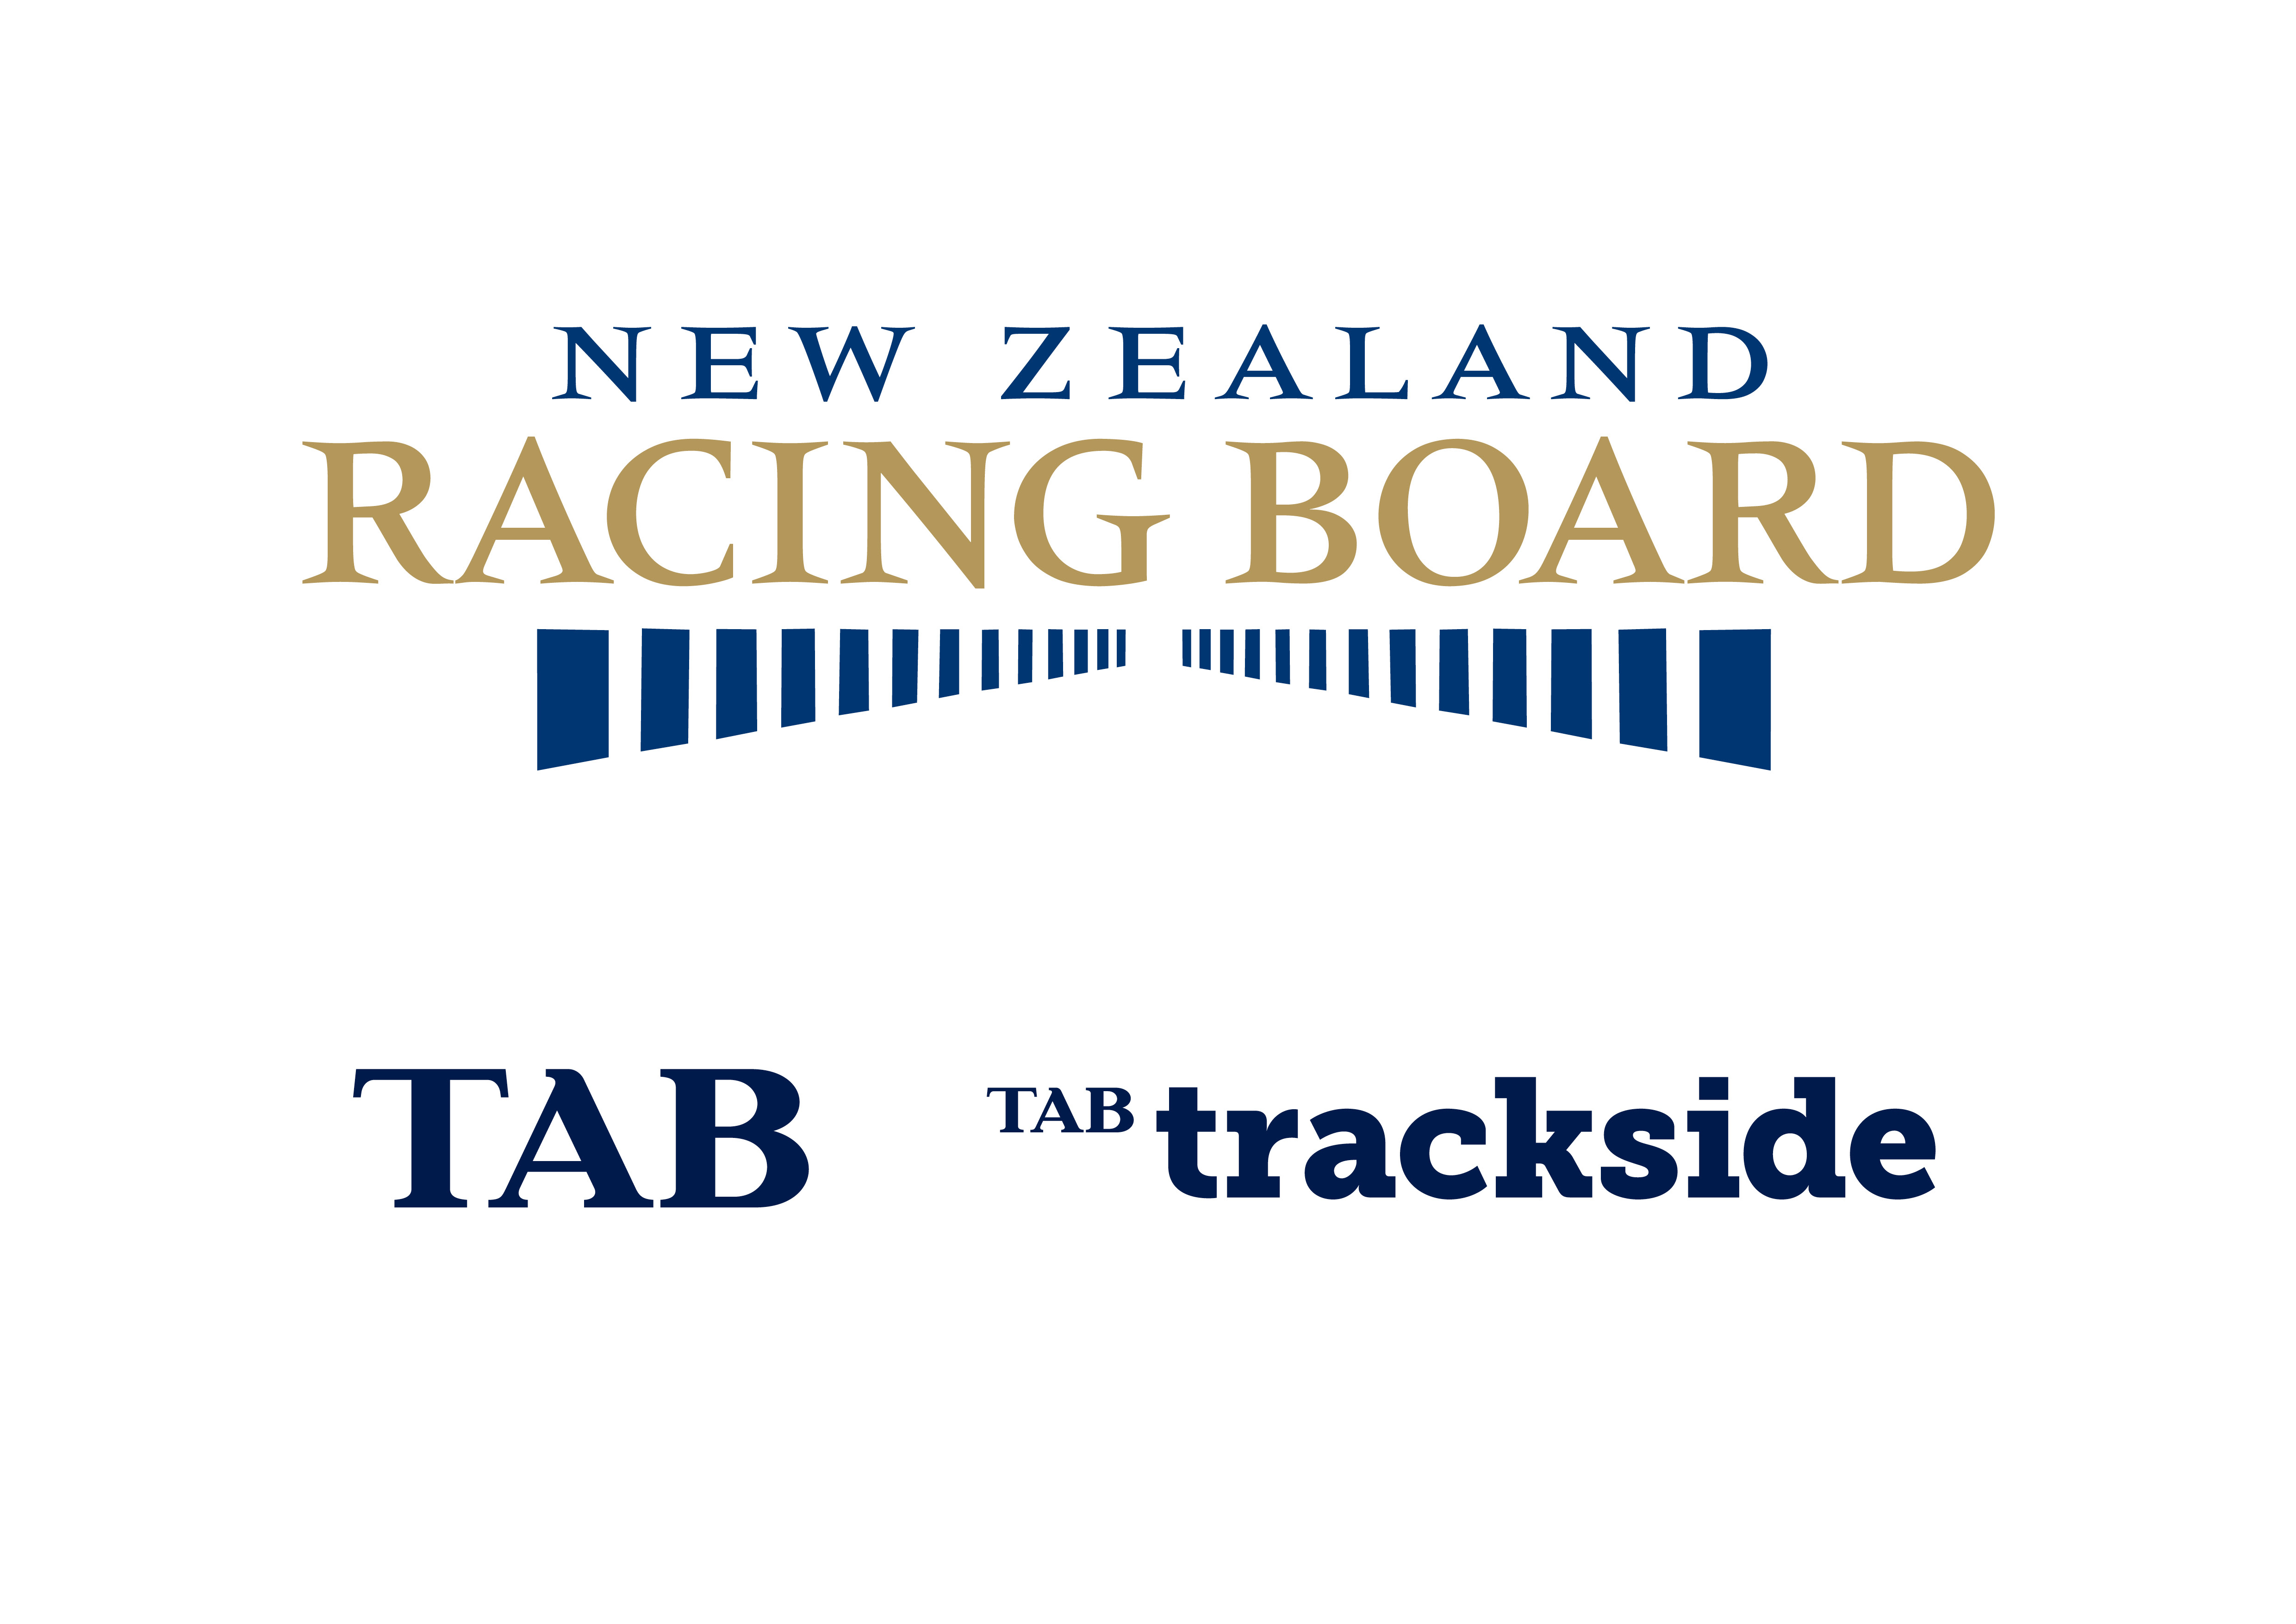 U13 BOYS-Hatch Cup Tournament-(Palmerston North)-NZ RACING BOARD Grant Approved-($5000)